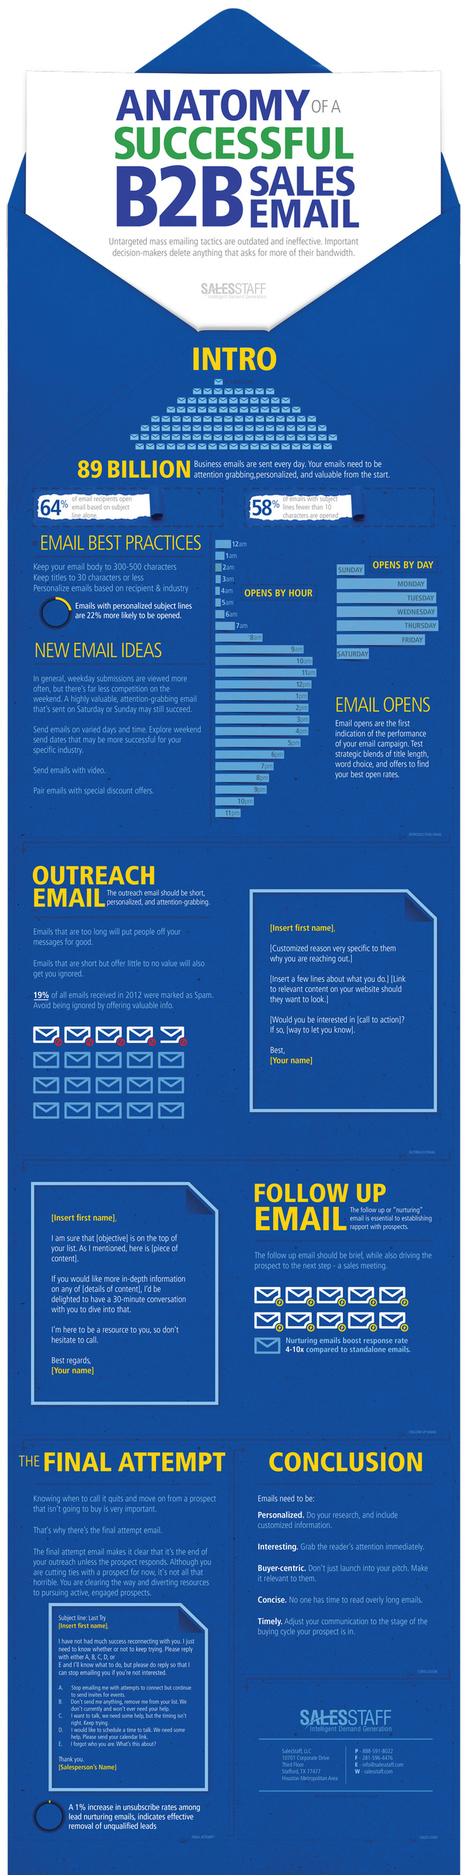 Anatomy of a Successful B2B Sales Email [Infographic] | B2B Marketing-The Practical Side | Scoop.it